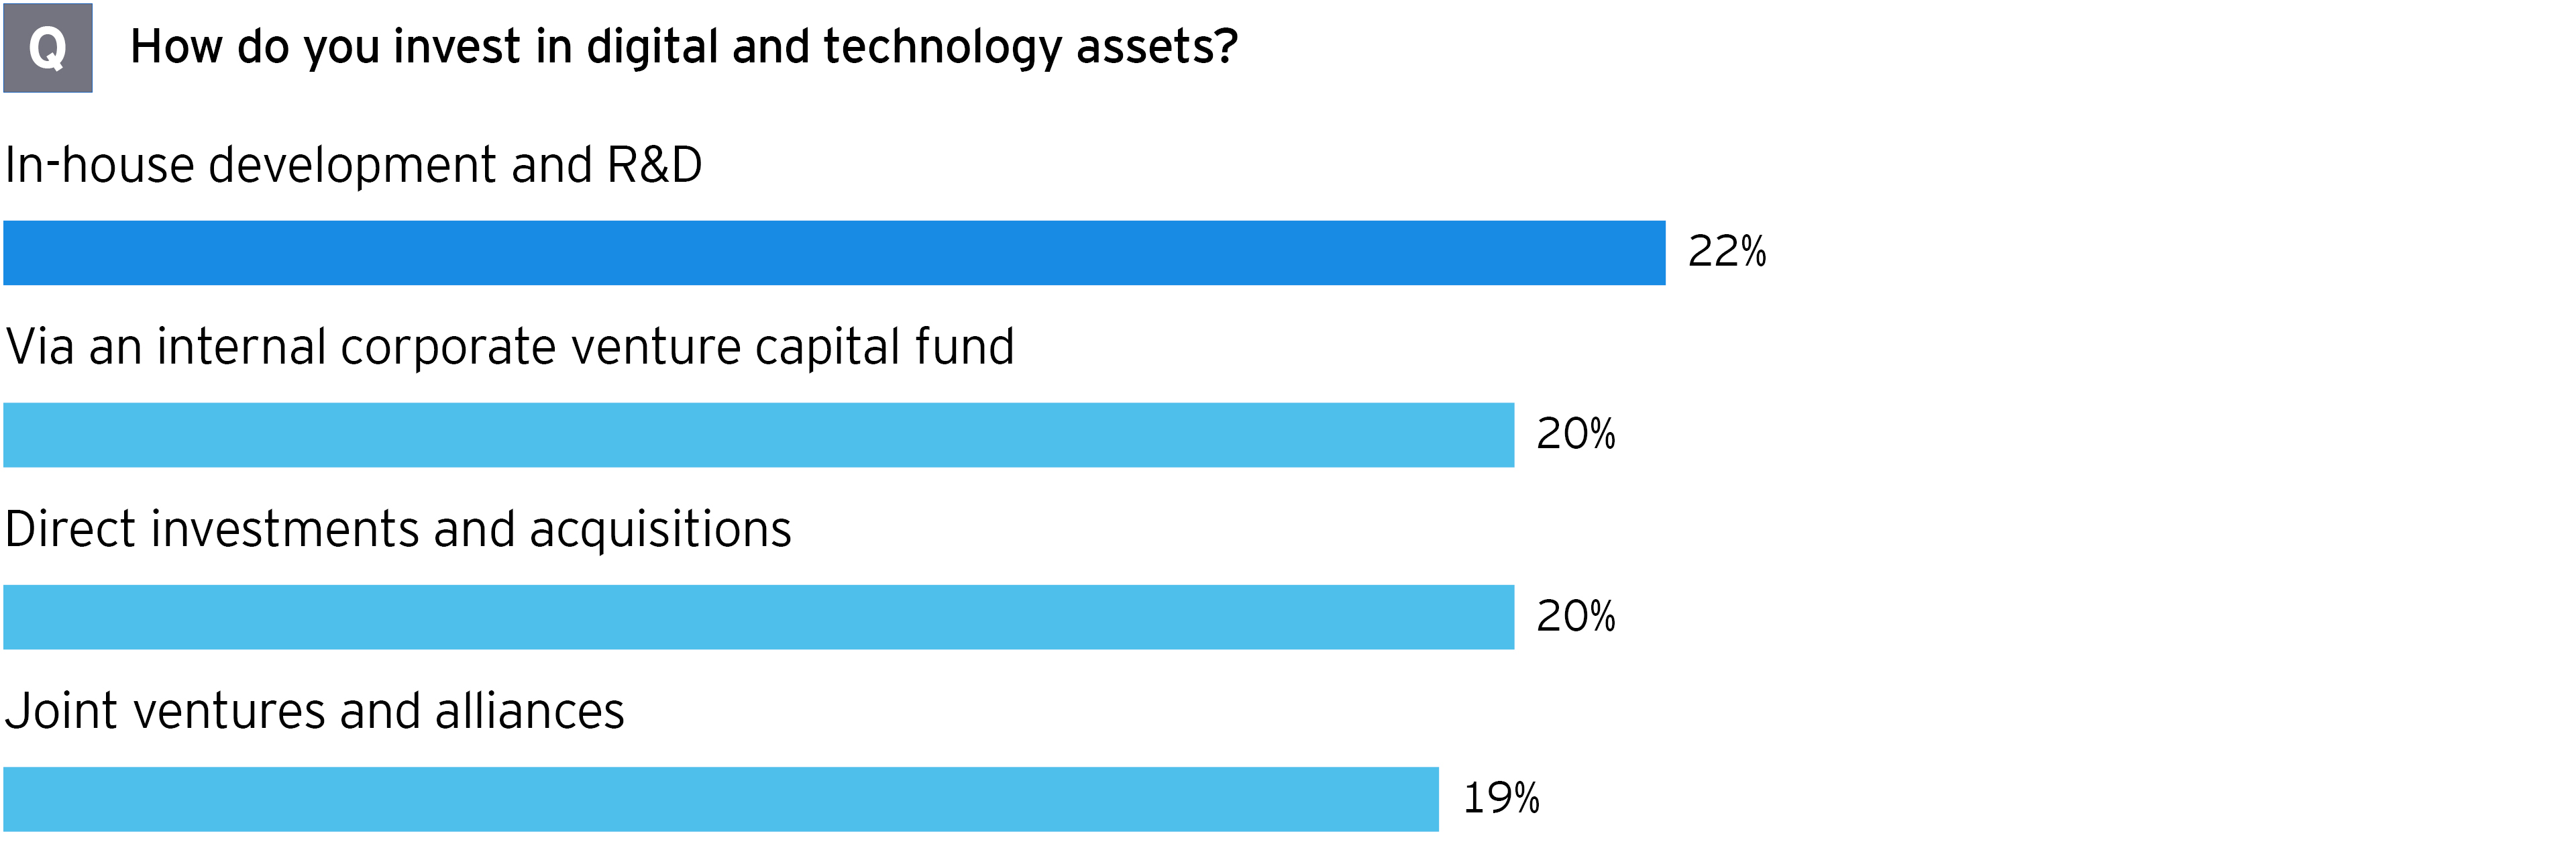 M&A survey mining and metals how investing in digital and tech assets